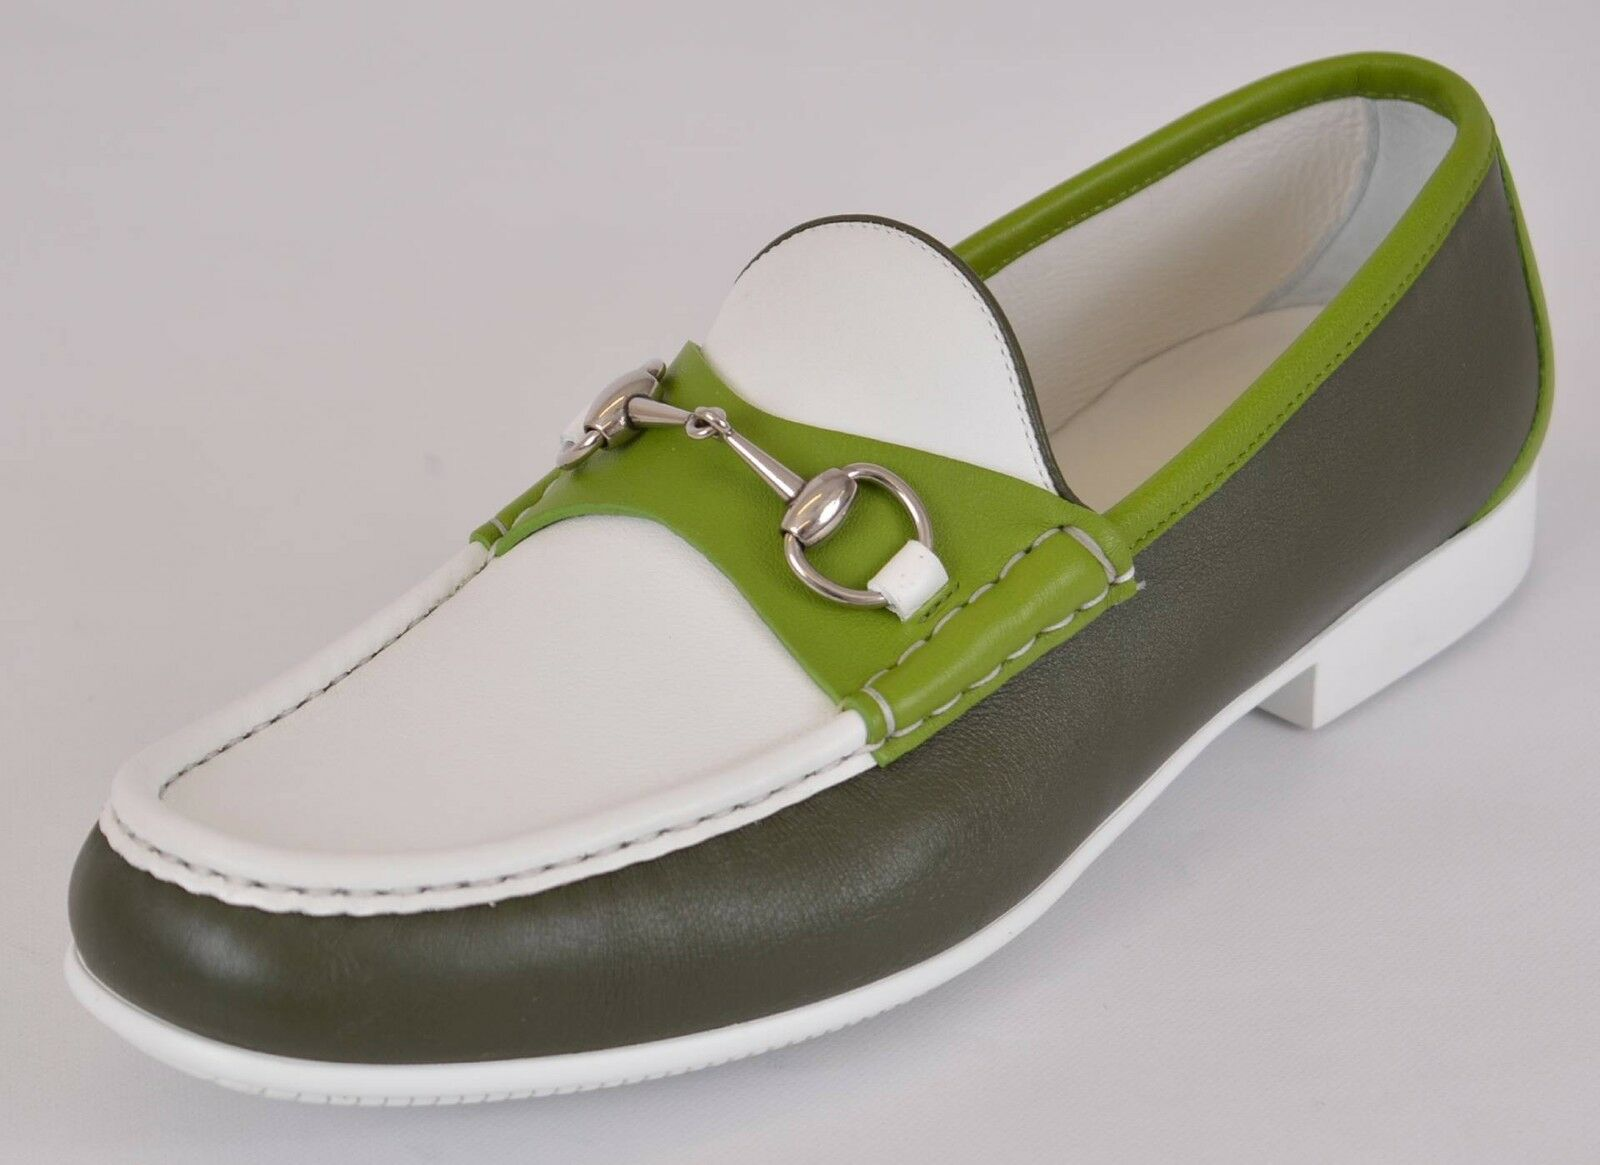 NEW Gucci Men's 337060 Green White Leather Horsebit Loafer Shoes 10.5 G 11.5 US